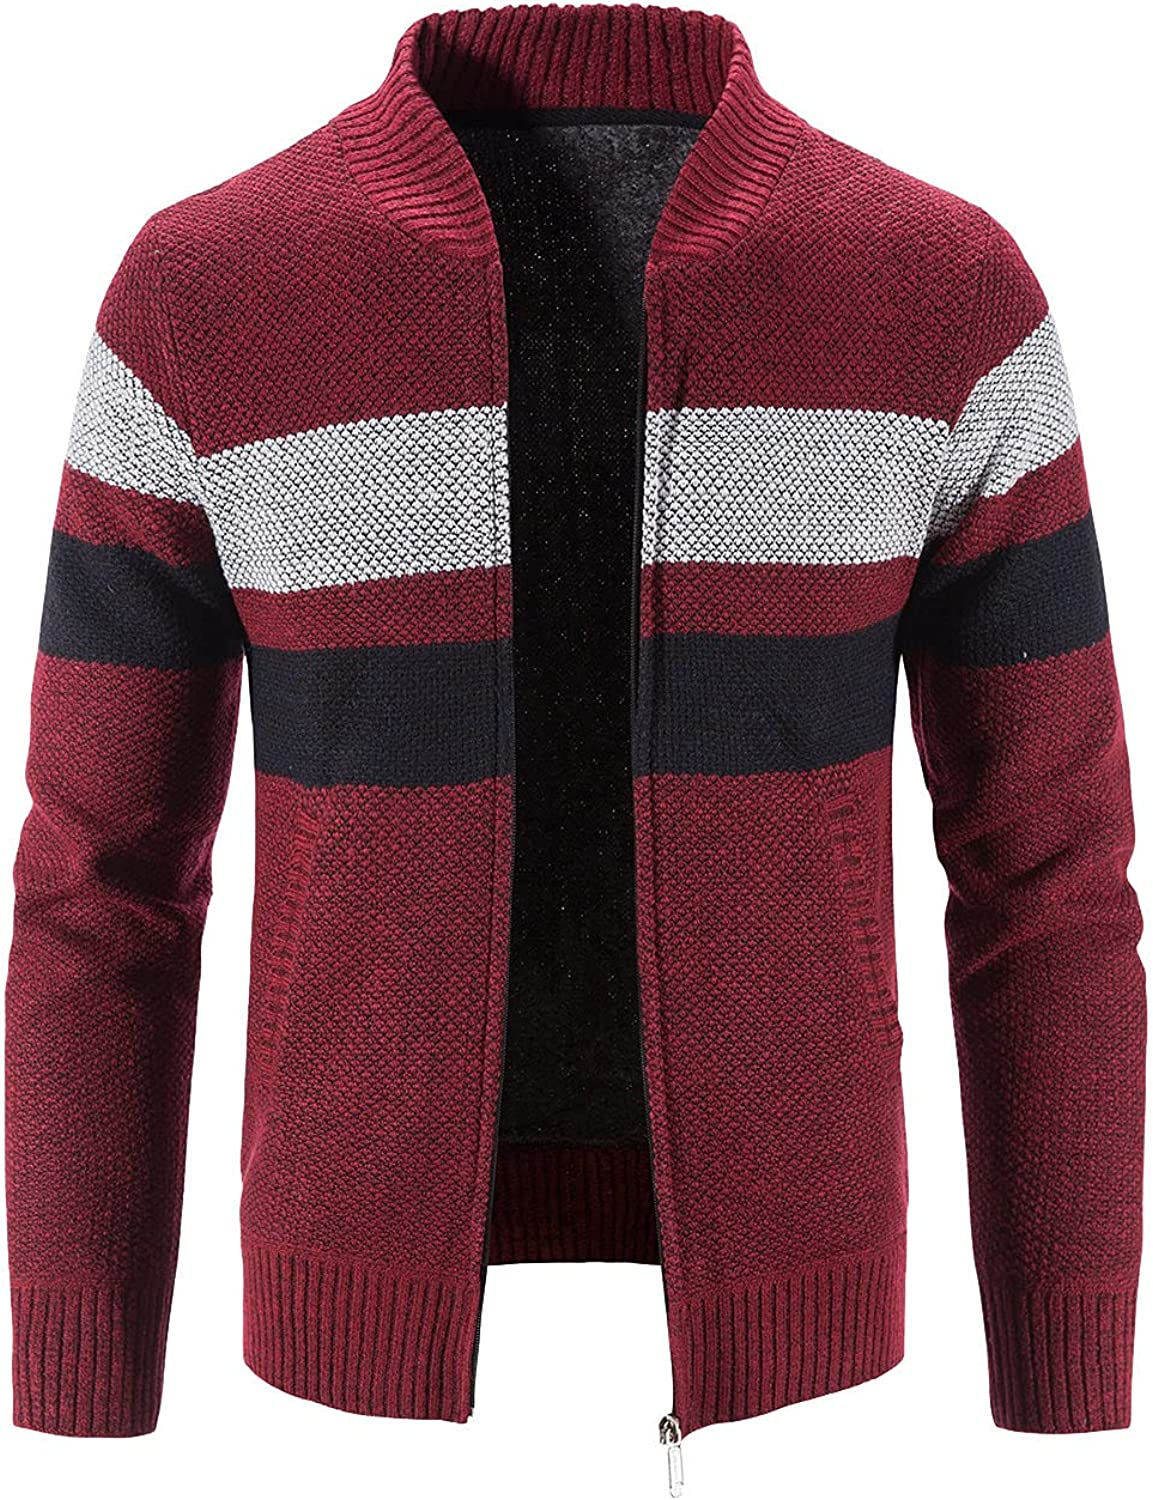 Men's Knit Cardigan Sweaters Casual Long Sleeve Stand Collar Open Front Fall Winter Clothes with Full Zip and Pockets